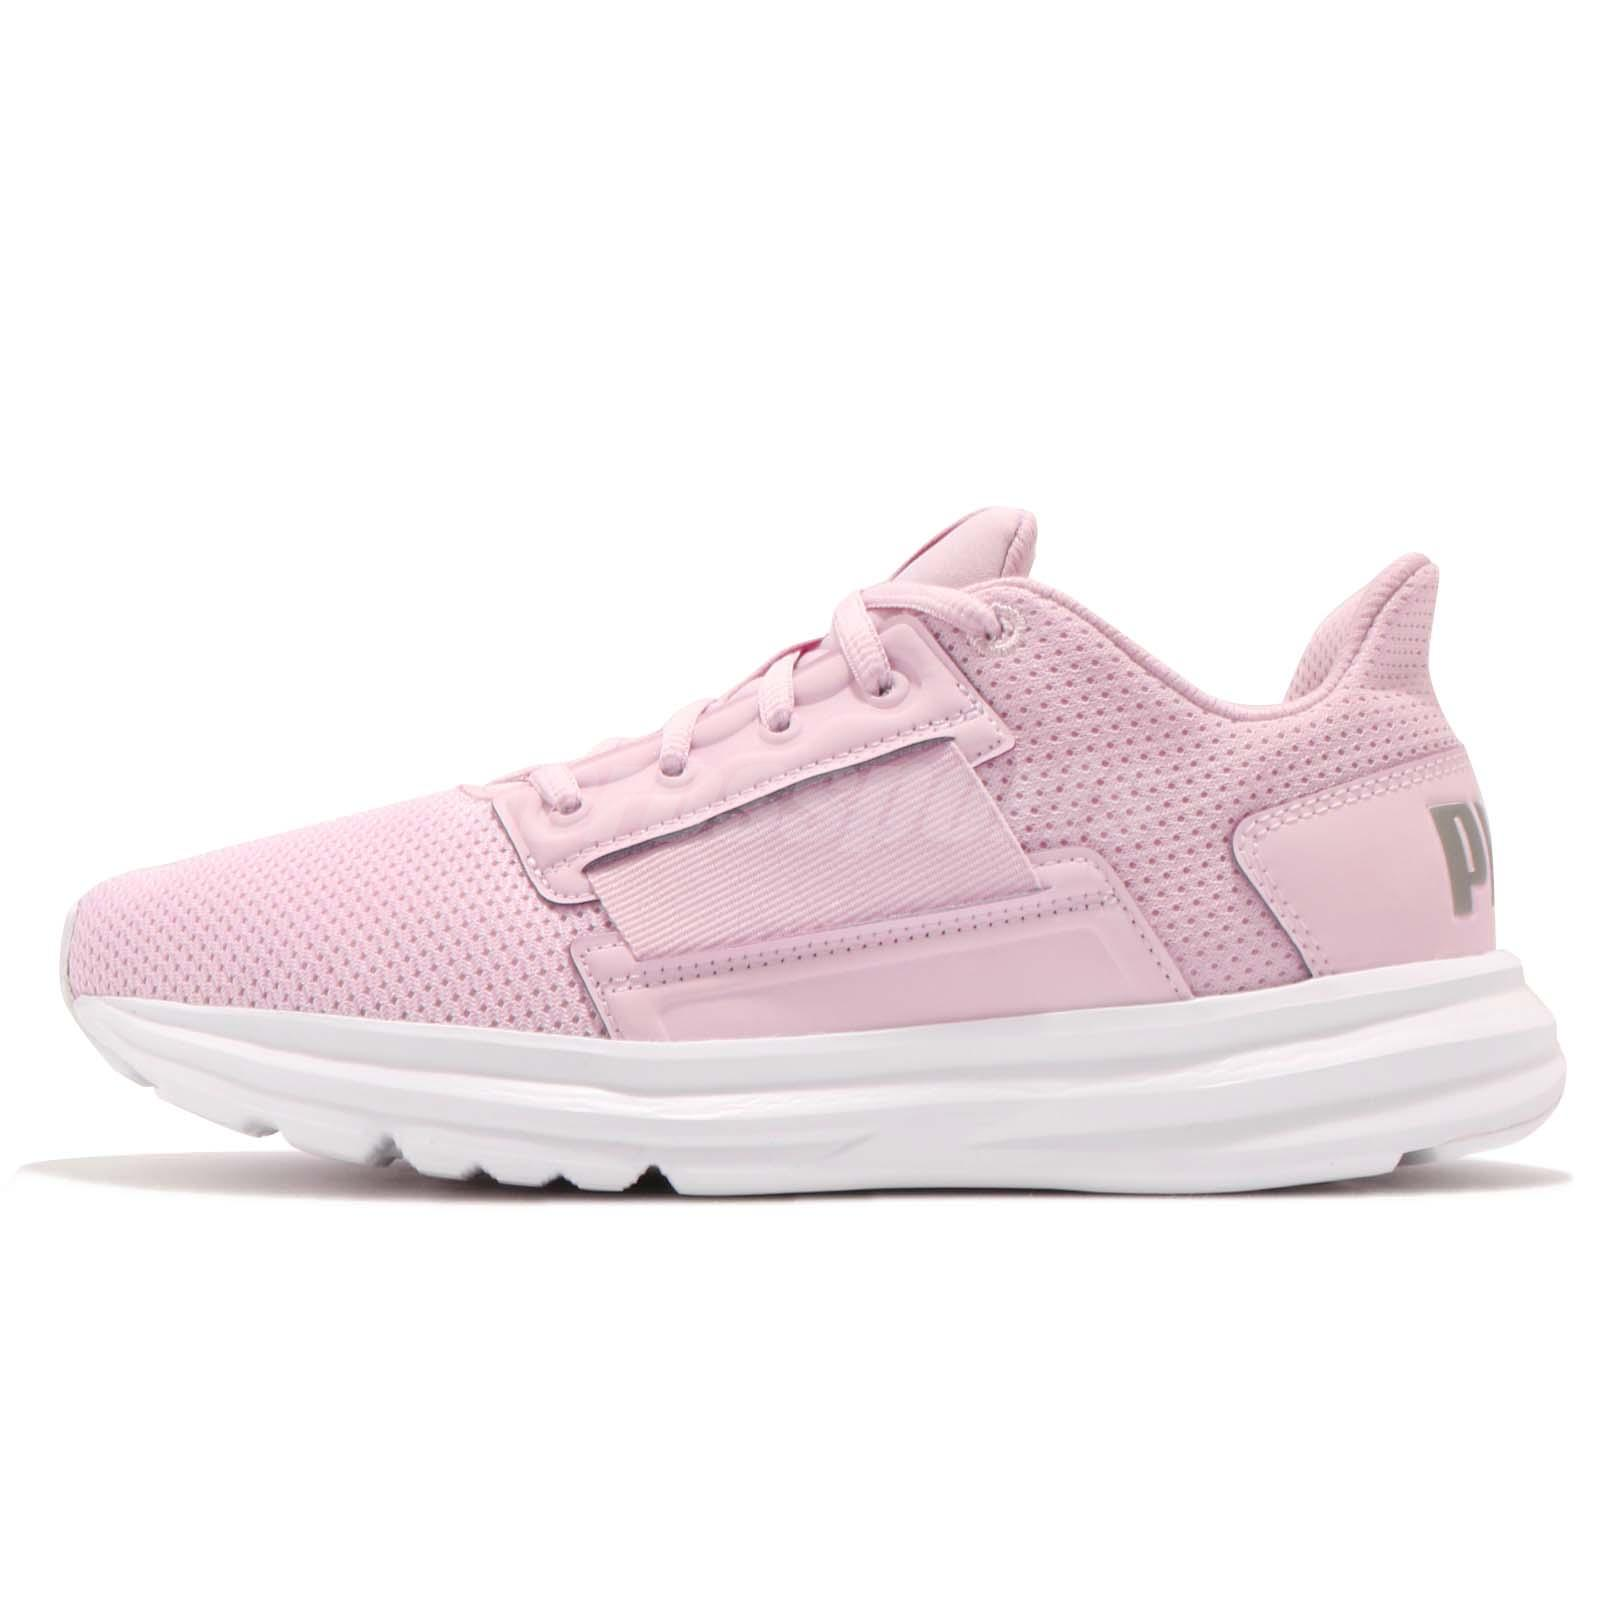 351b6dd7265f Puma Enzo Street Wns Orchid Silver White Women Running Shoes Sneakers  190463-05